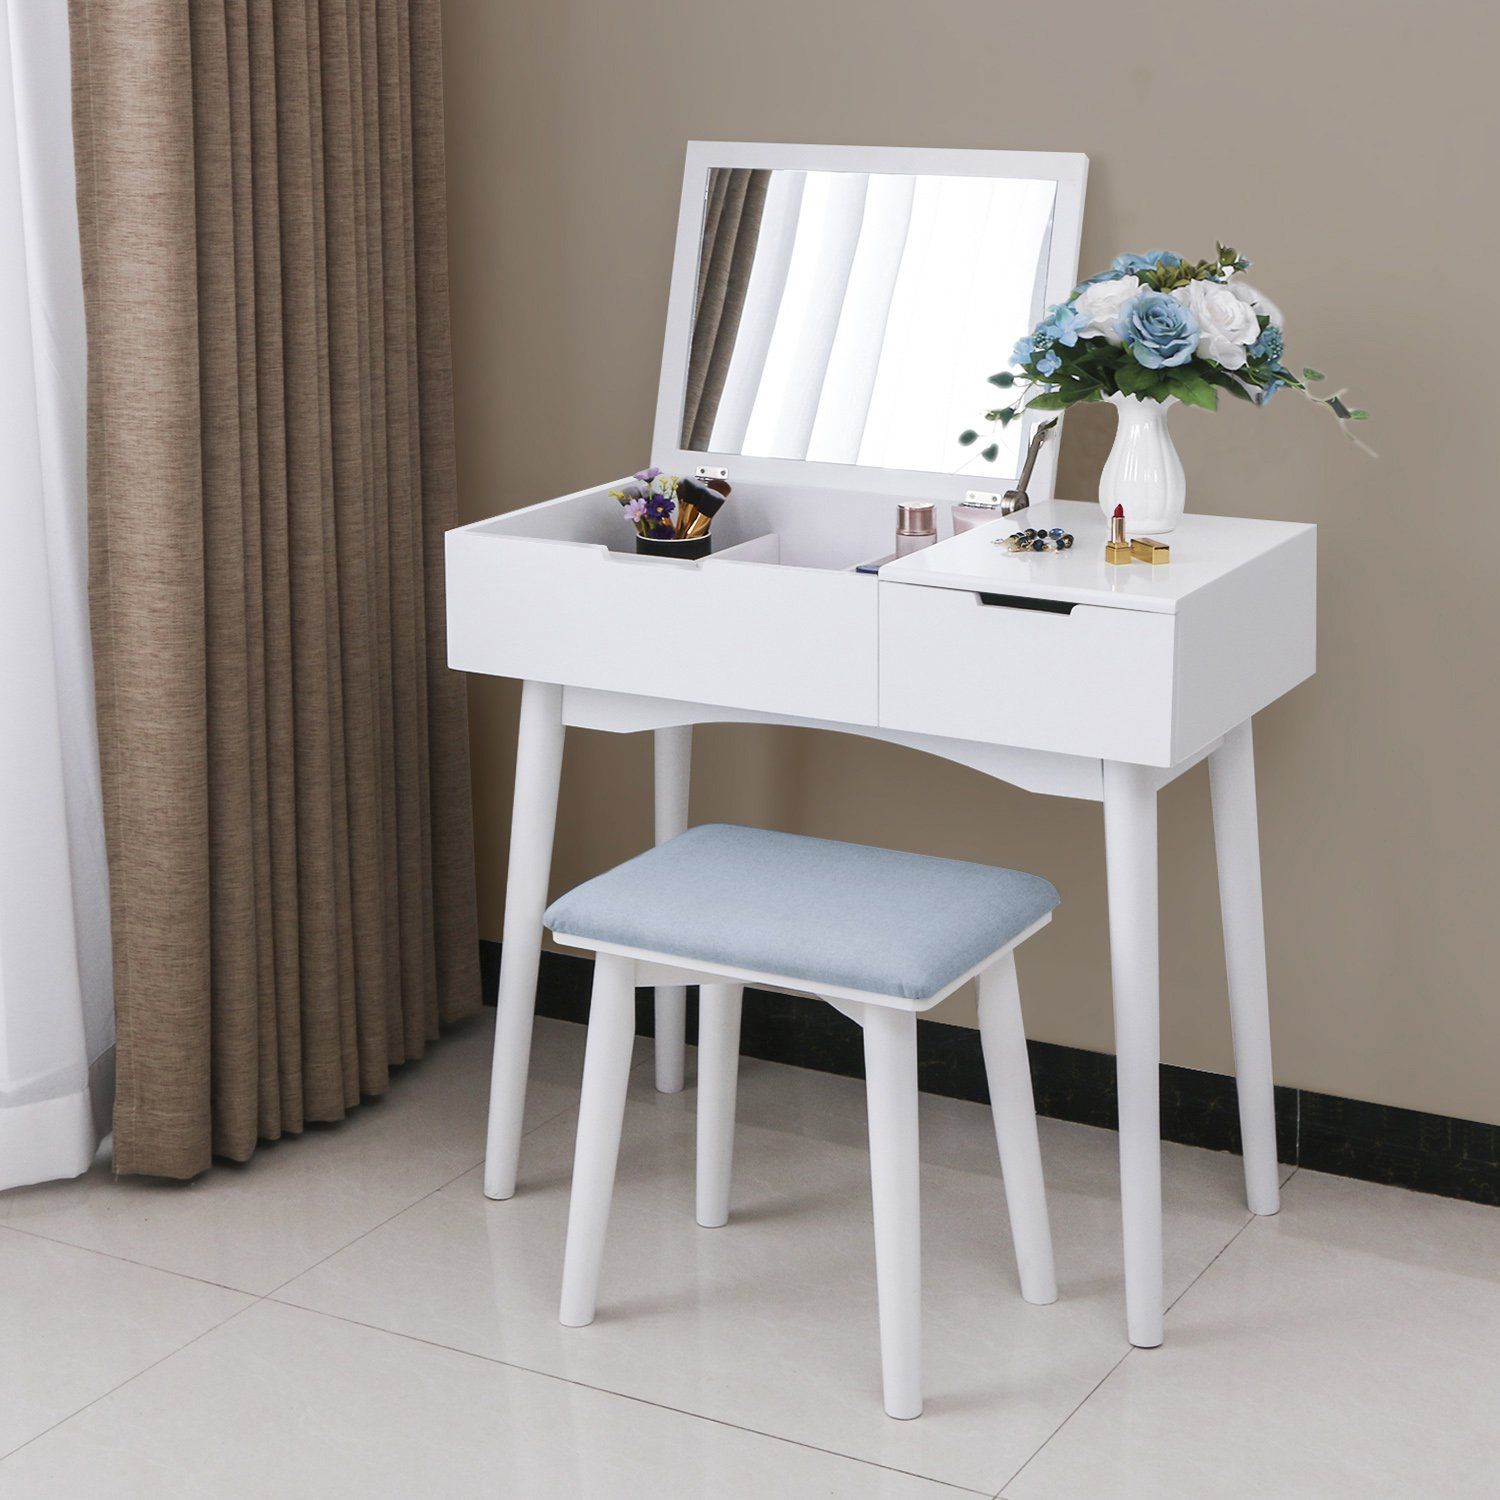 Bewishome Vanity Makeup Table Set Flip Top Mirror Sliding Drawer Cushioned Stool Organizer Dressing Tab White Vanity Desk Makeup Table Vanity Vanity Table